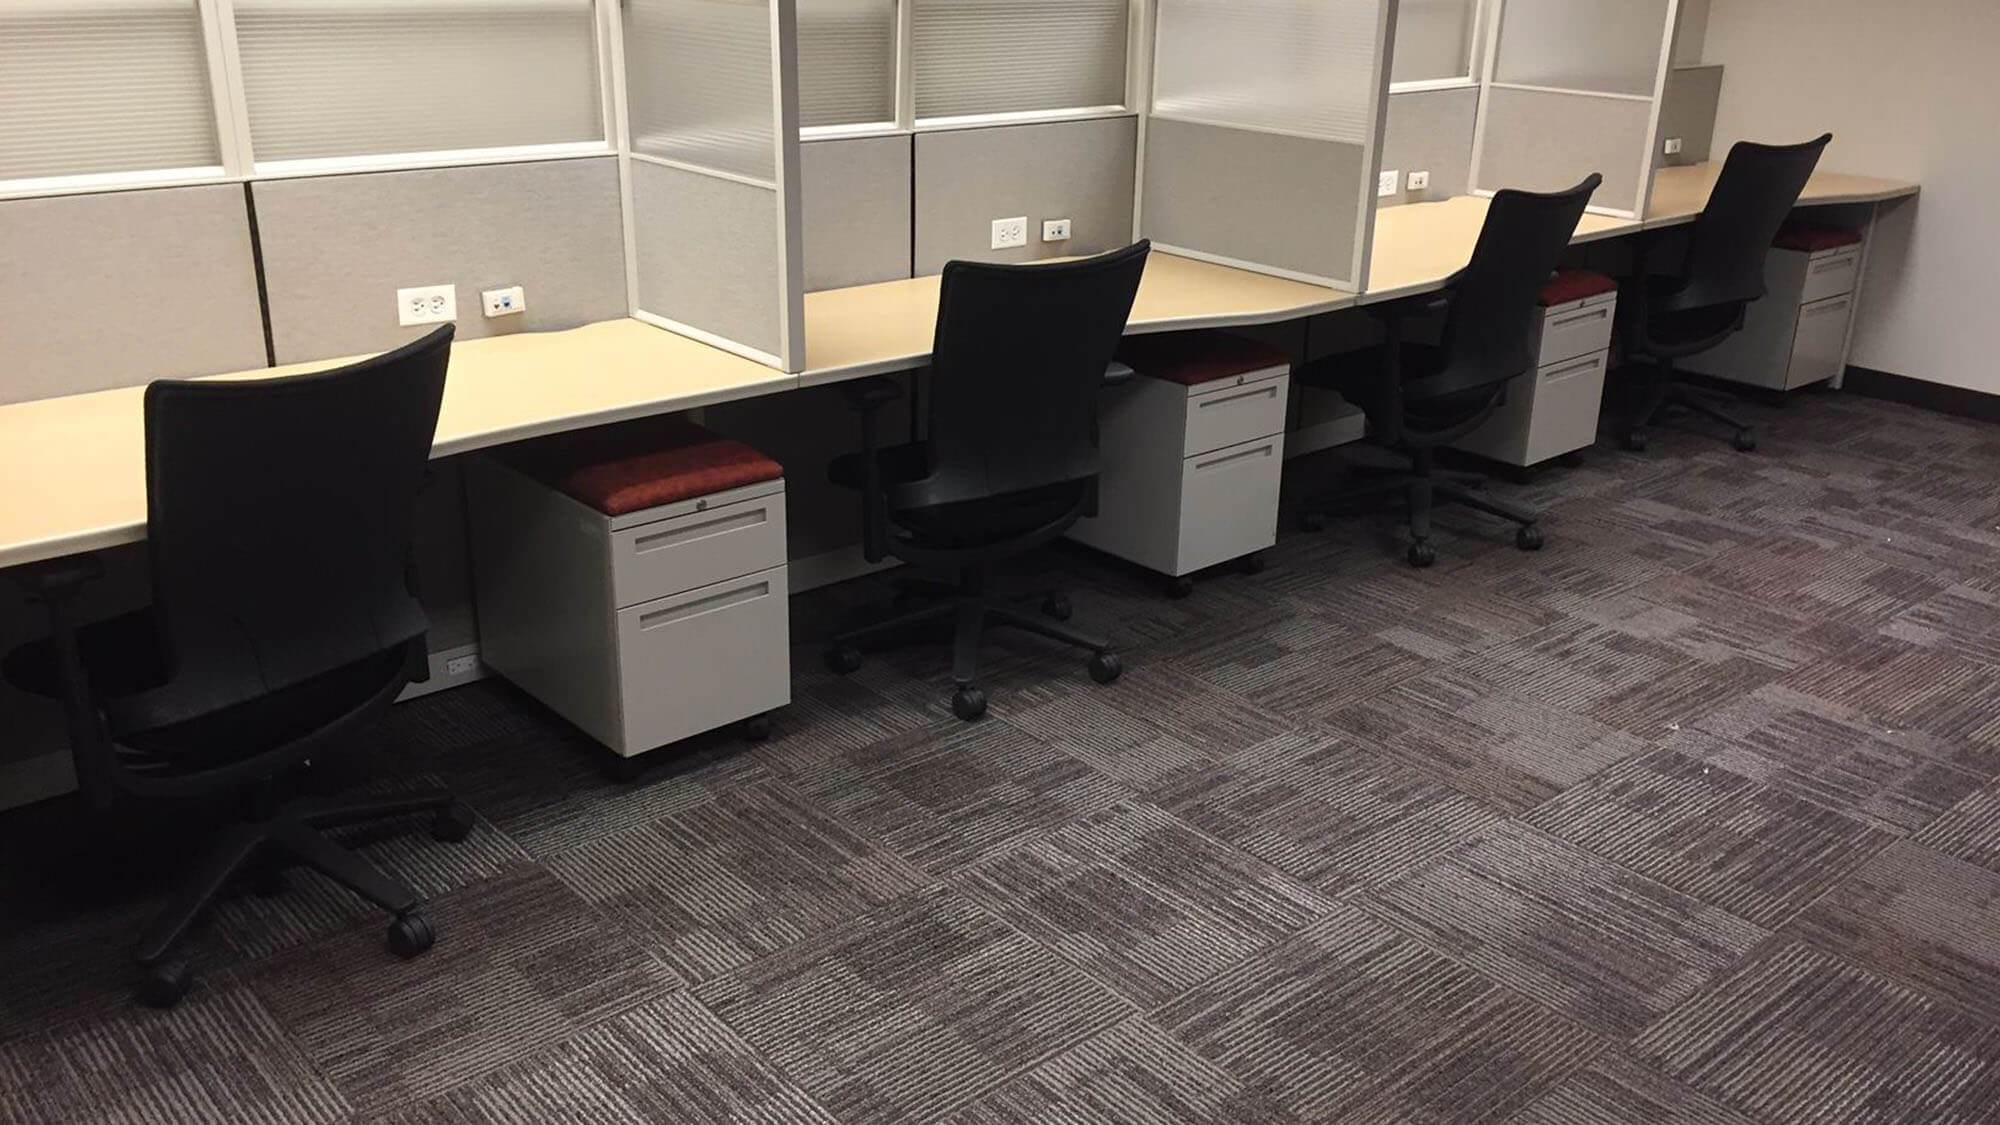 Office design furniture installation in chicago il for Furniture 60614